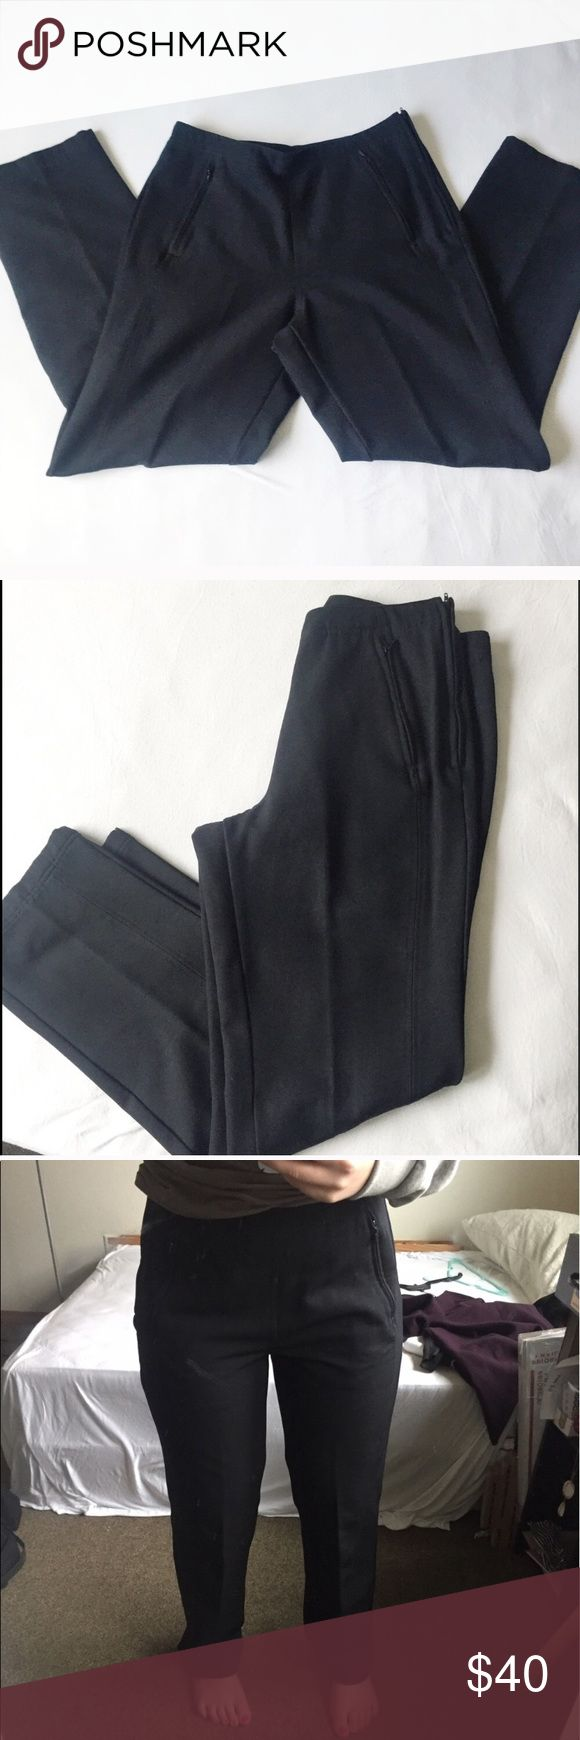 Columbia GRT Womens Walking Trouser Columbia GRT womens black Pant in size ten. Like new condition with no imperfections, tears, or piling. I wish I could find a stock photo of these because they are very flattering. They could get away with looking like a dress pant or trouser in my opinion and are fully lined so they are comfortable. Two zip pockets in the front and a zip closure on the side. Columbia Pants Trousers